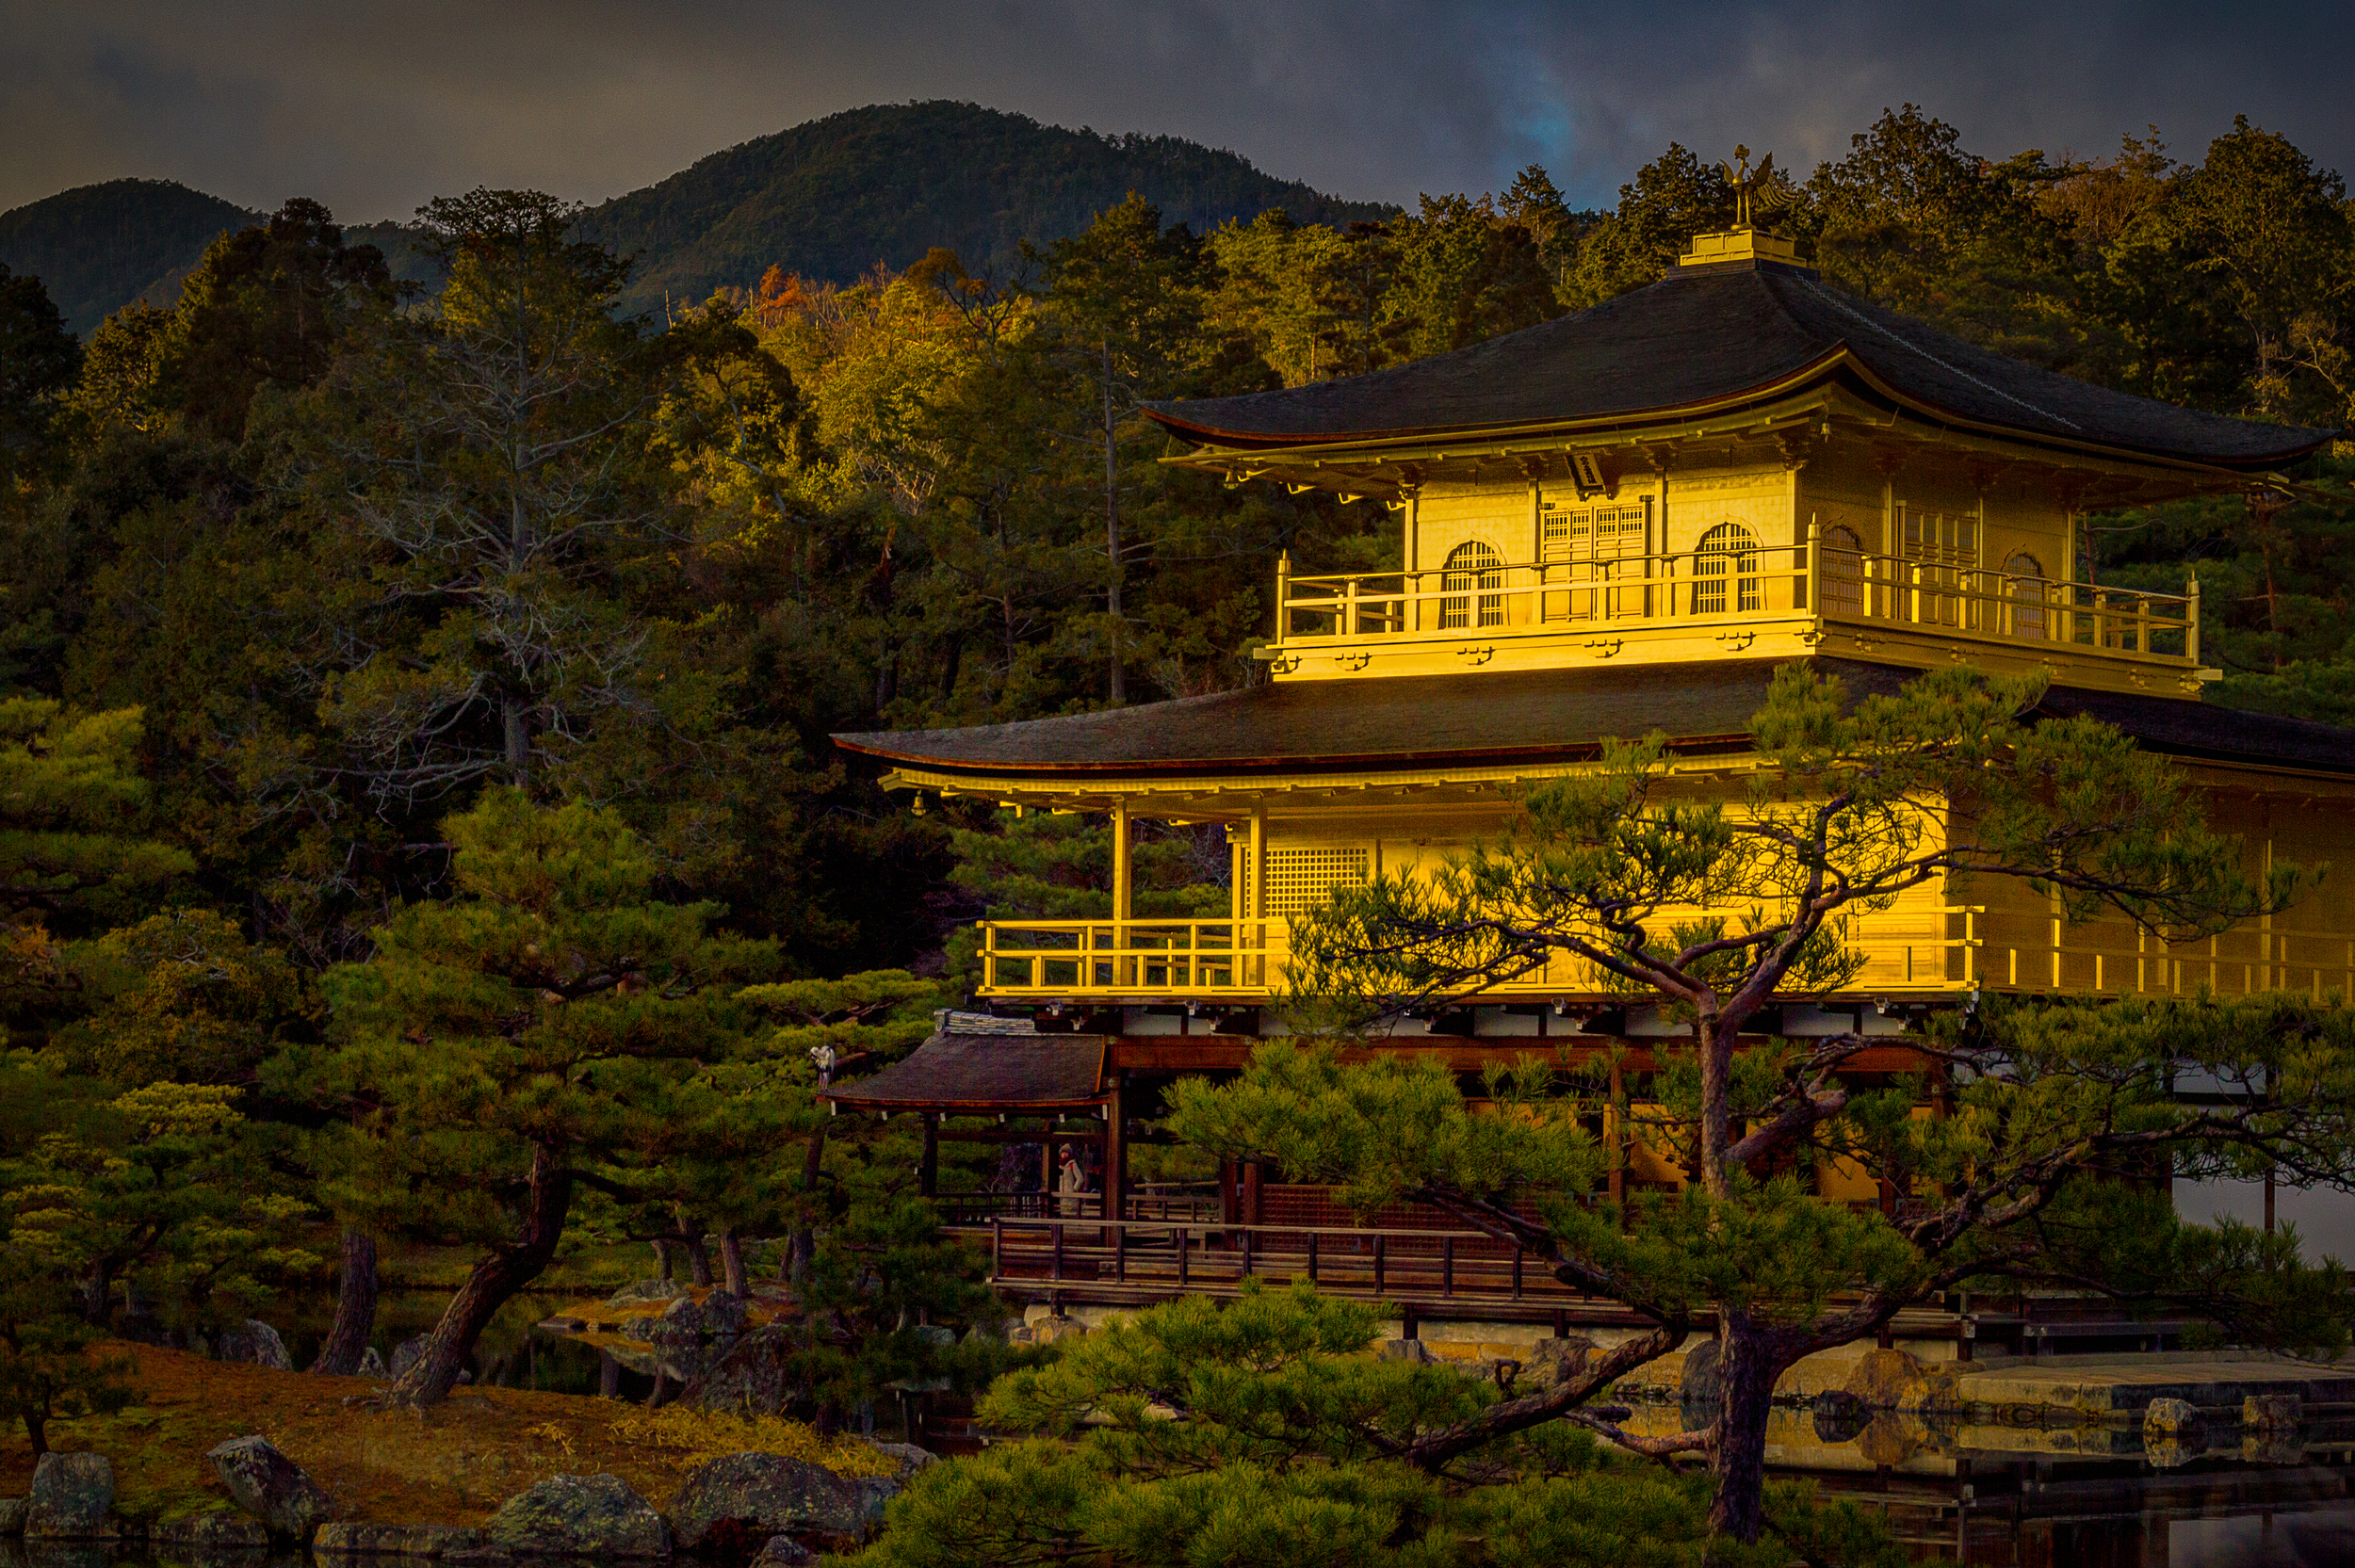 The Golden Pavilion || Kyoto Japan